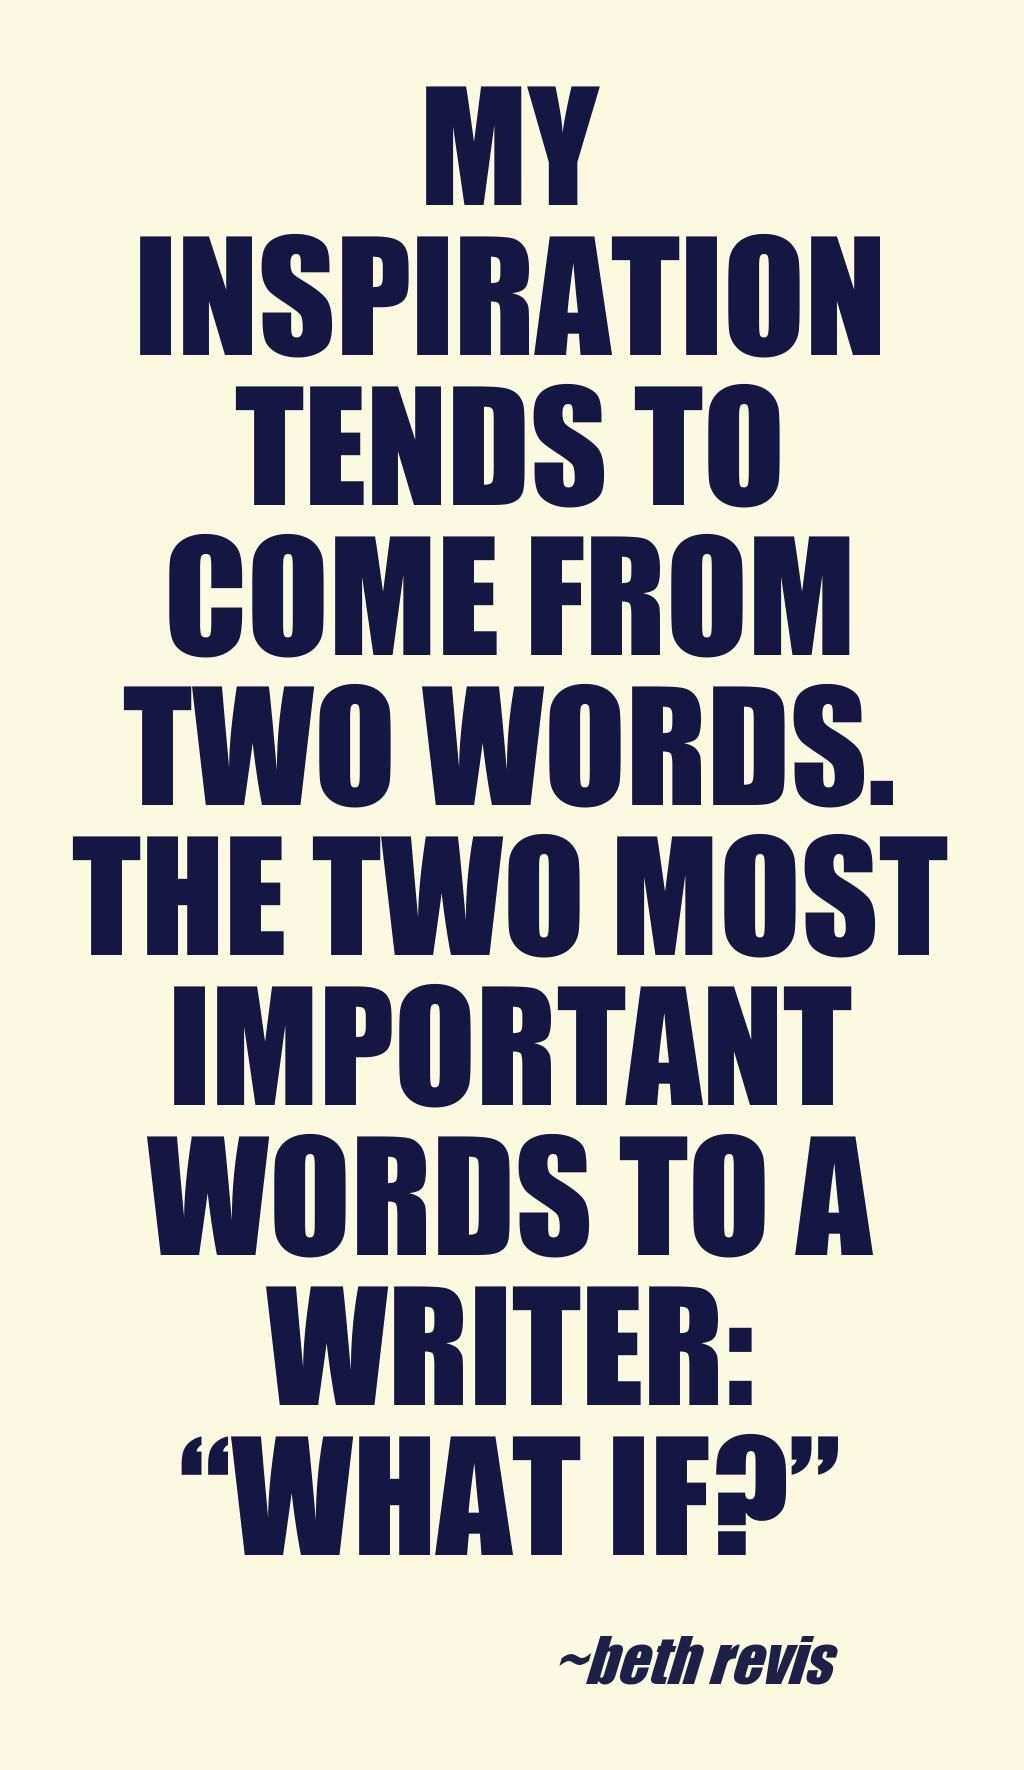 30 inspiring quotes on writing | writing/reading quotes | pinterest